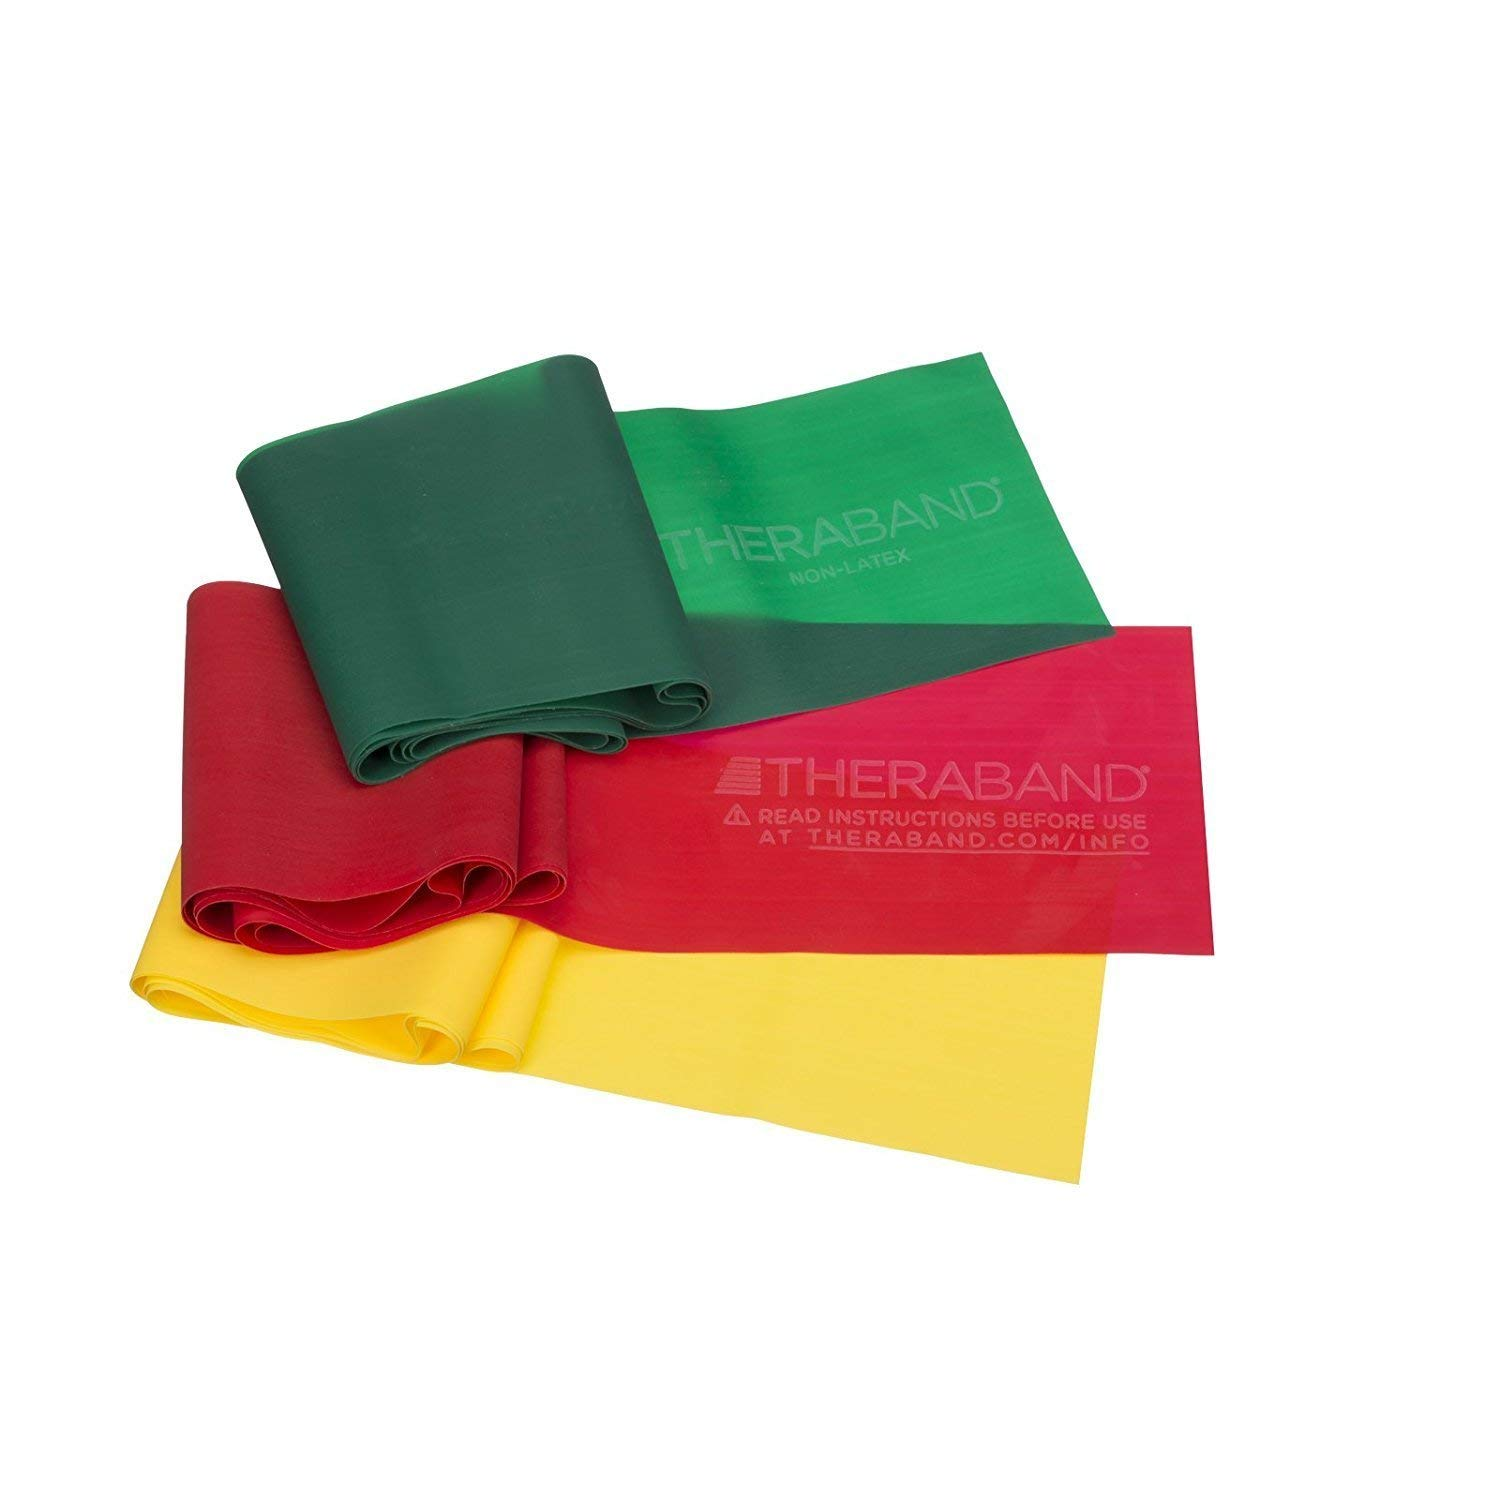 TheraBand Resistance Band Set, Professional Latex Elastic Bands Upper & Lower Body & Core Exercise, Physical Therapy, Lower Pilates, At-Home Workouts Rehab, Yellow & Red & Green, Beginner Set